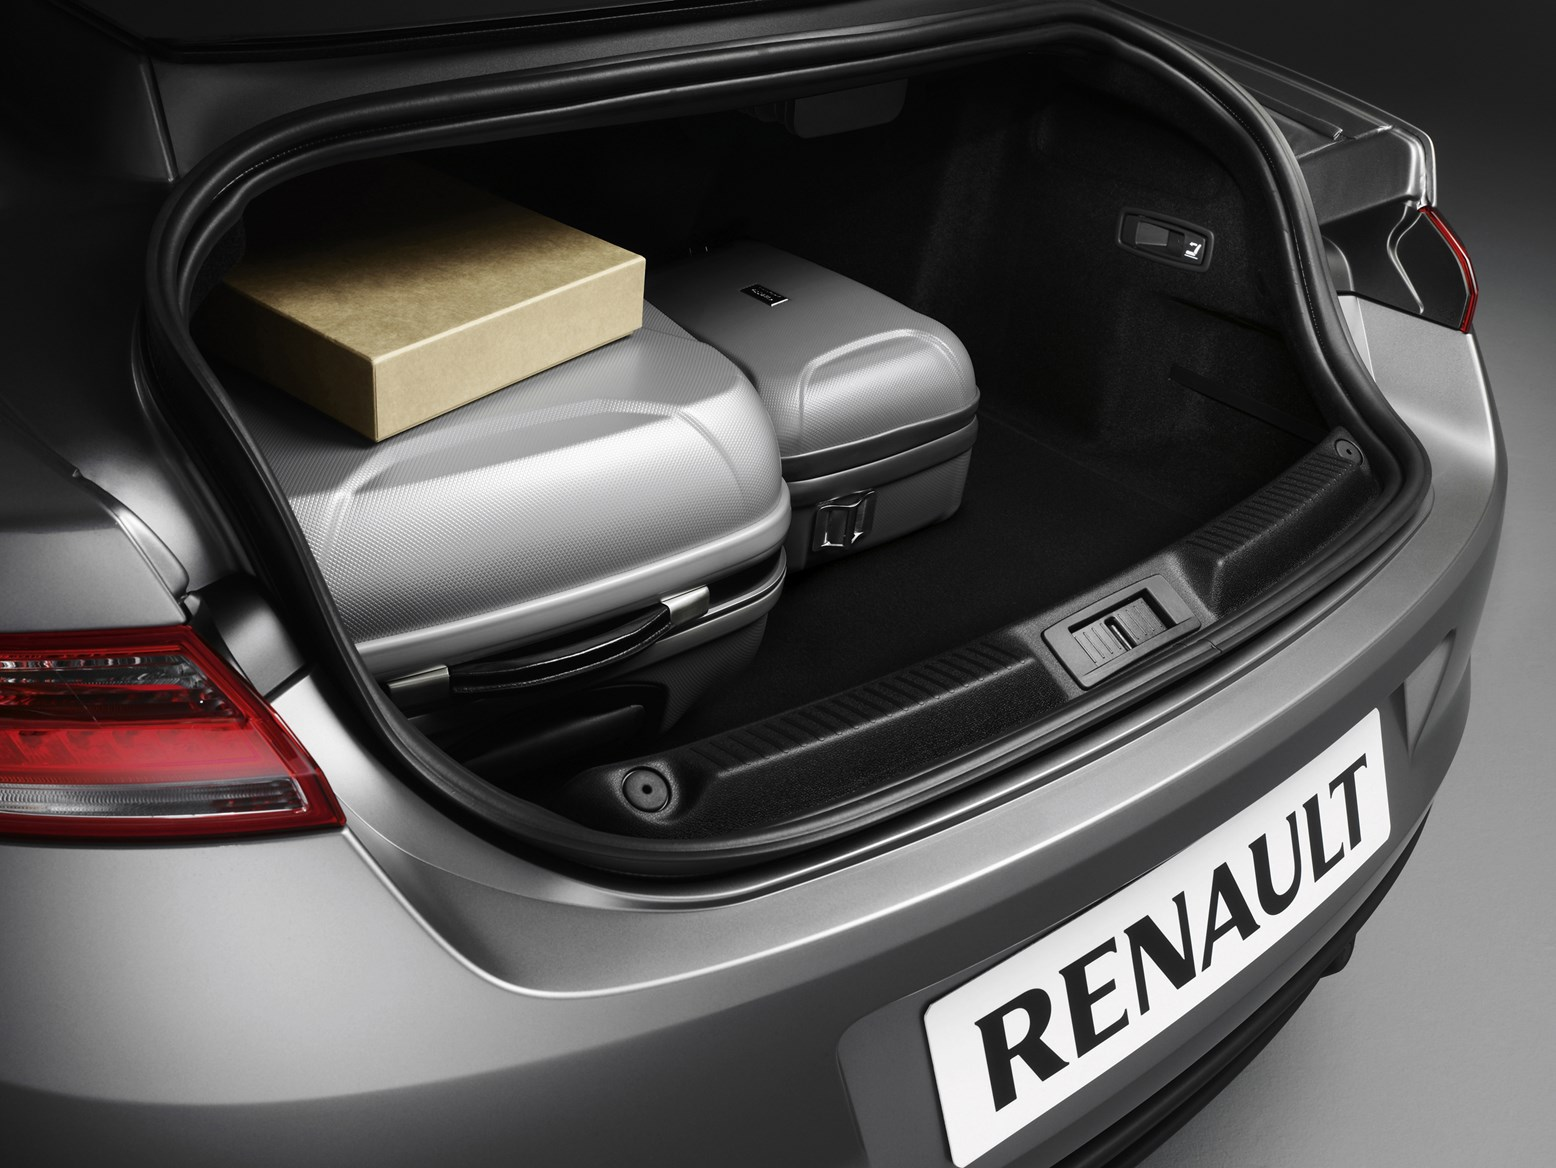 renault laguna coup 2008 2012 features equipment and accessories parkers. Black Bedroom Furniture Sets. Home Design Ideas